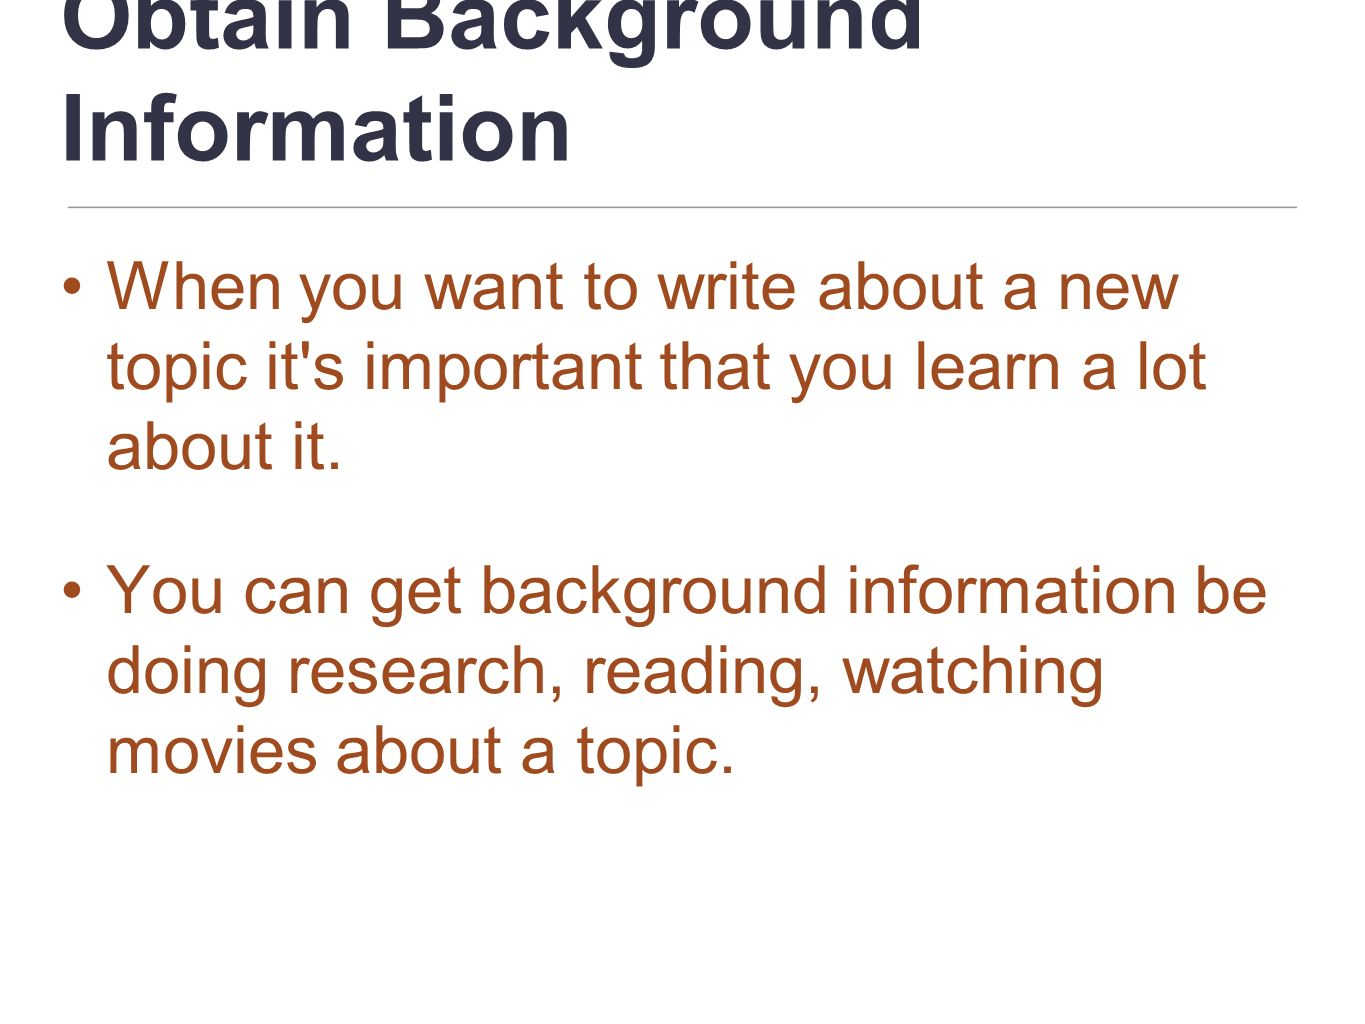 Obtain Background Information